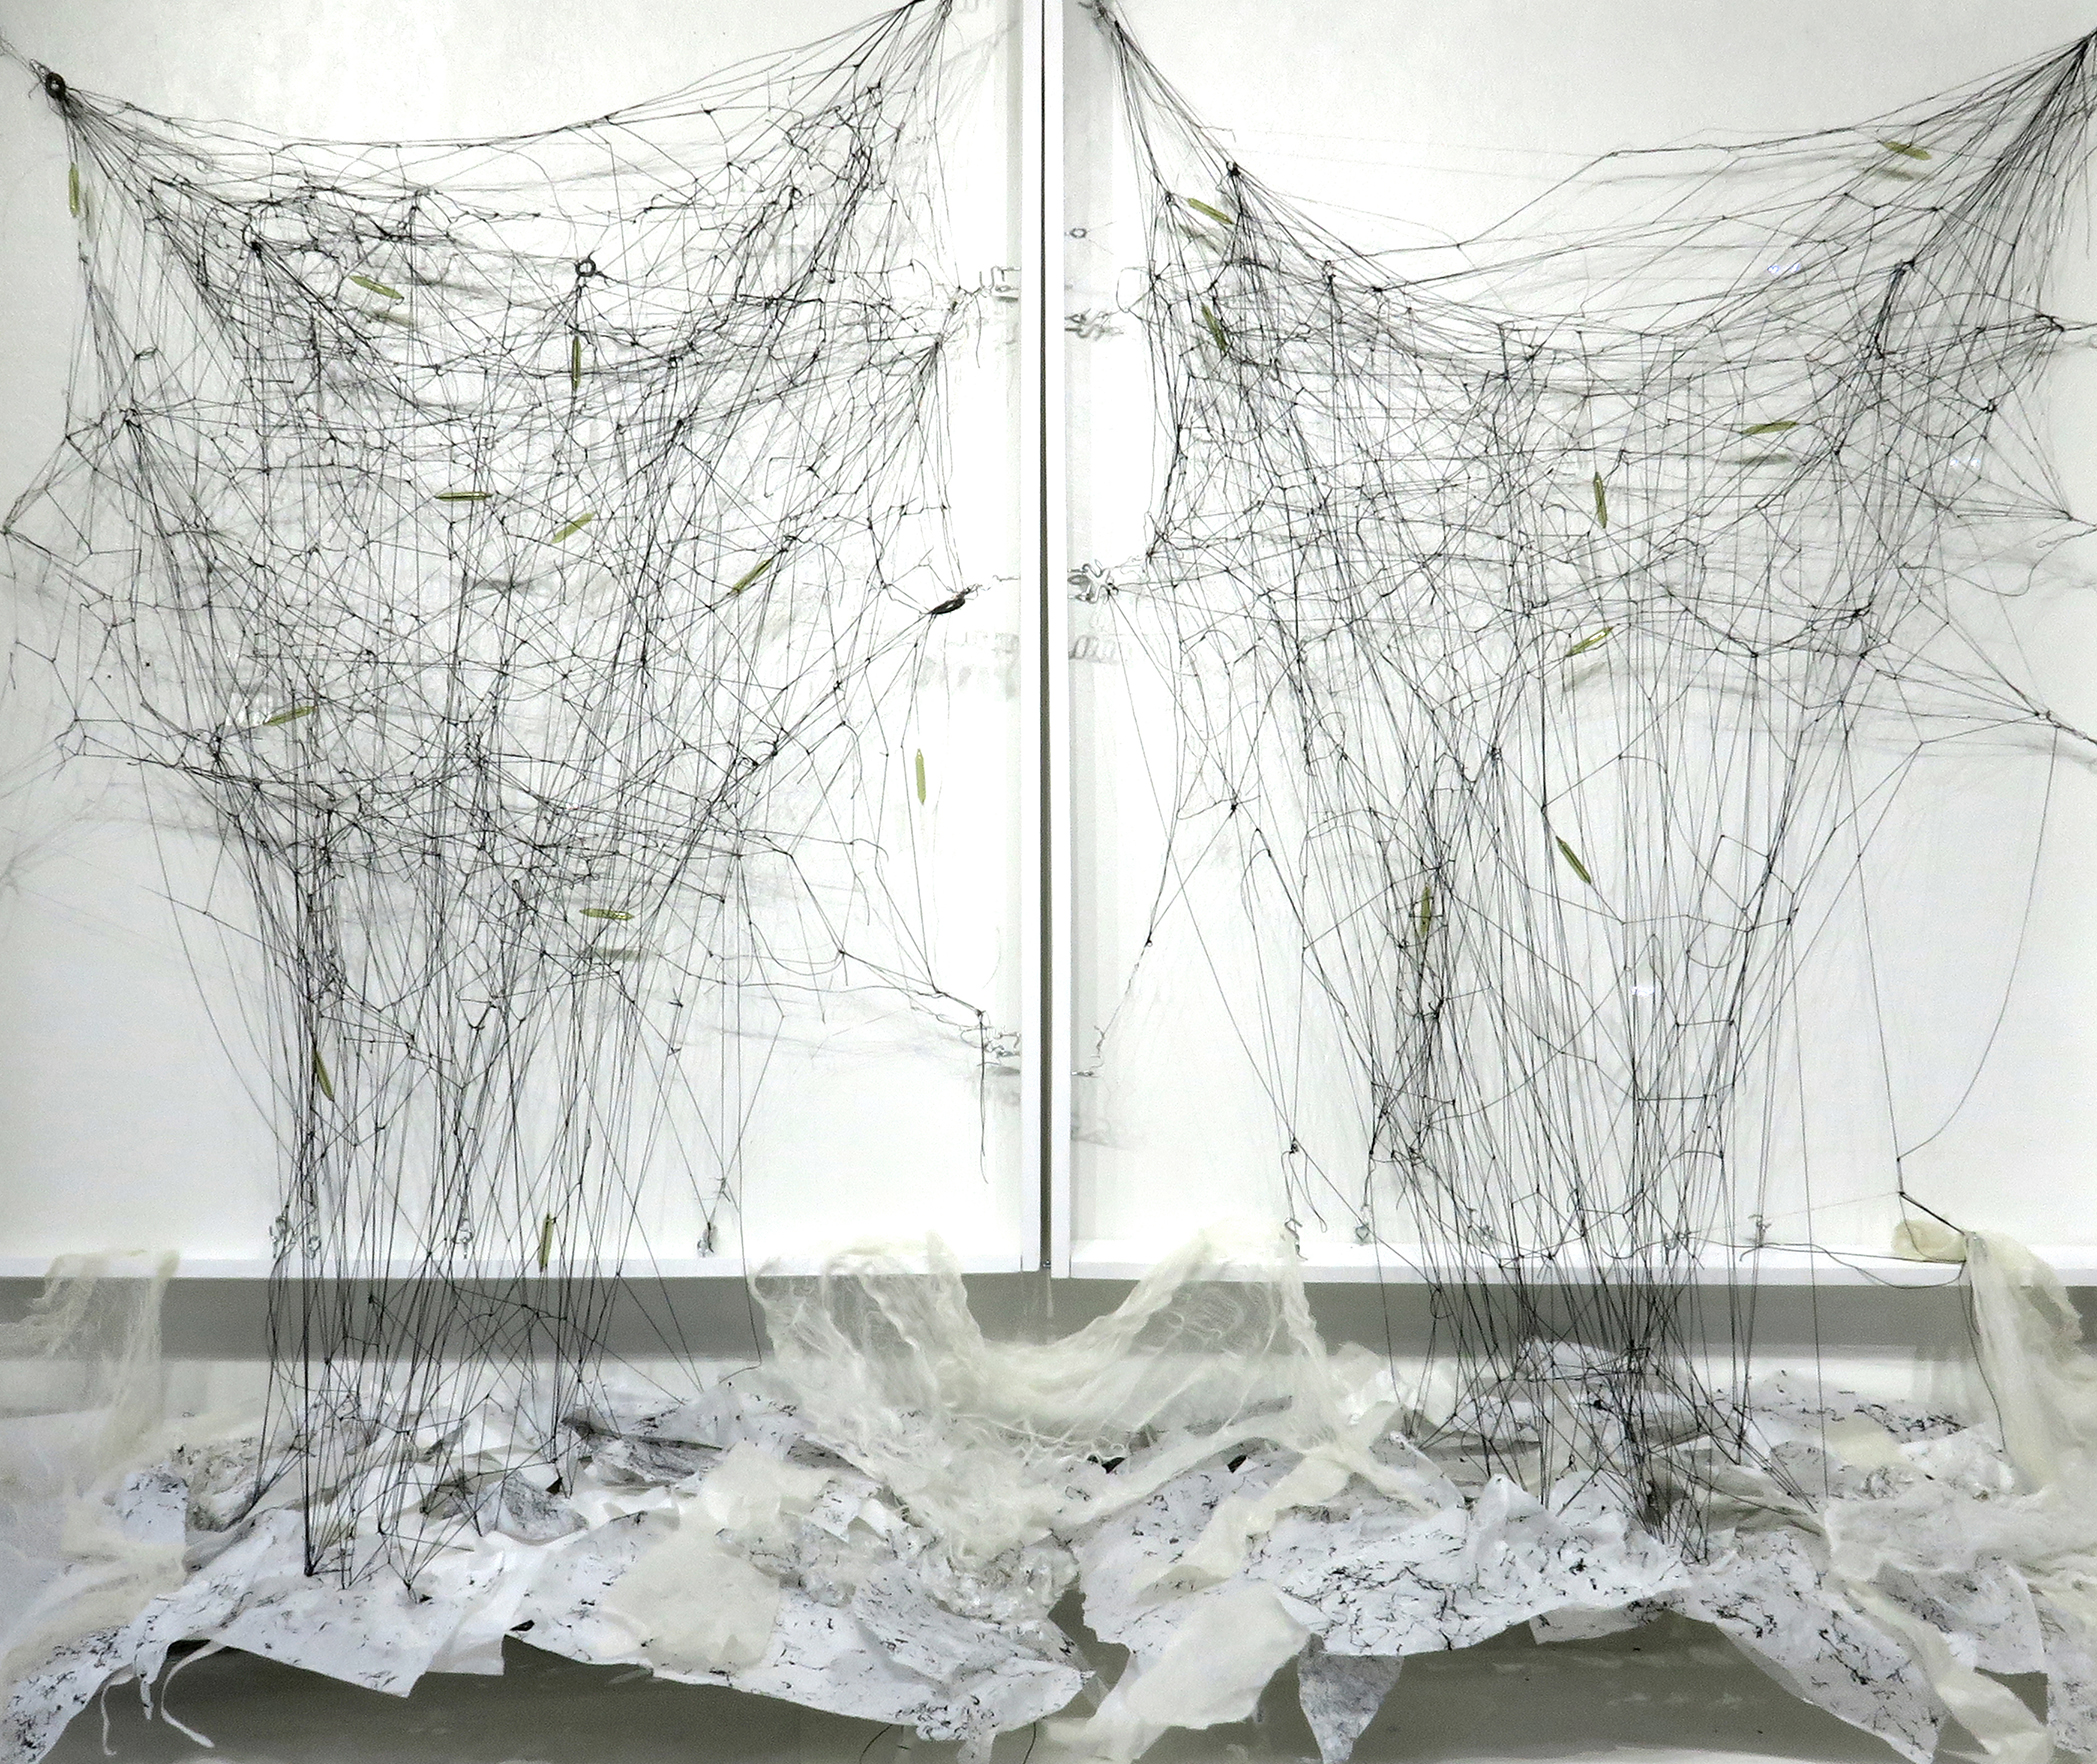 Kathryn Hart, Daunting Transitions, site-specific installation